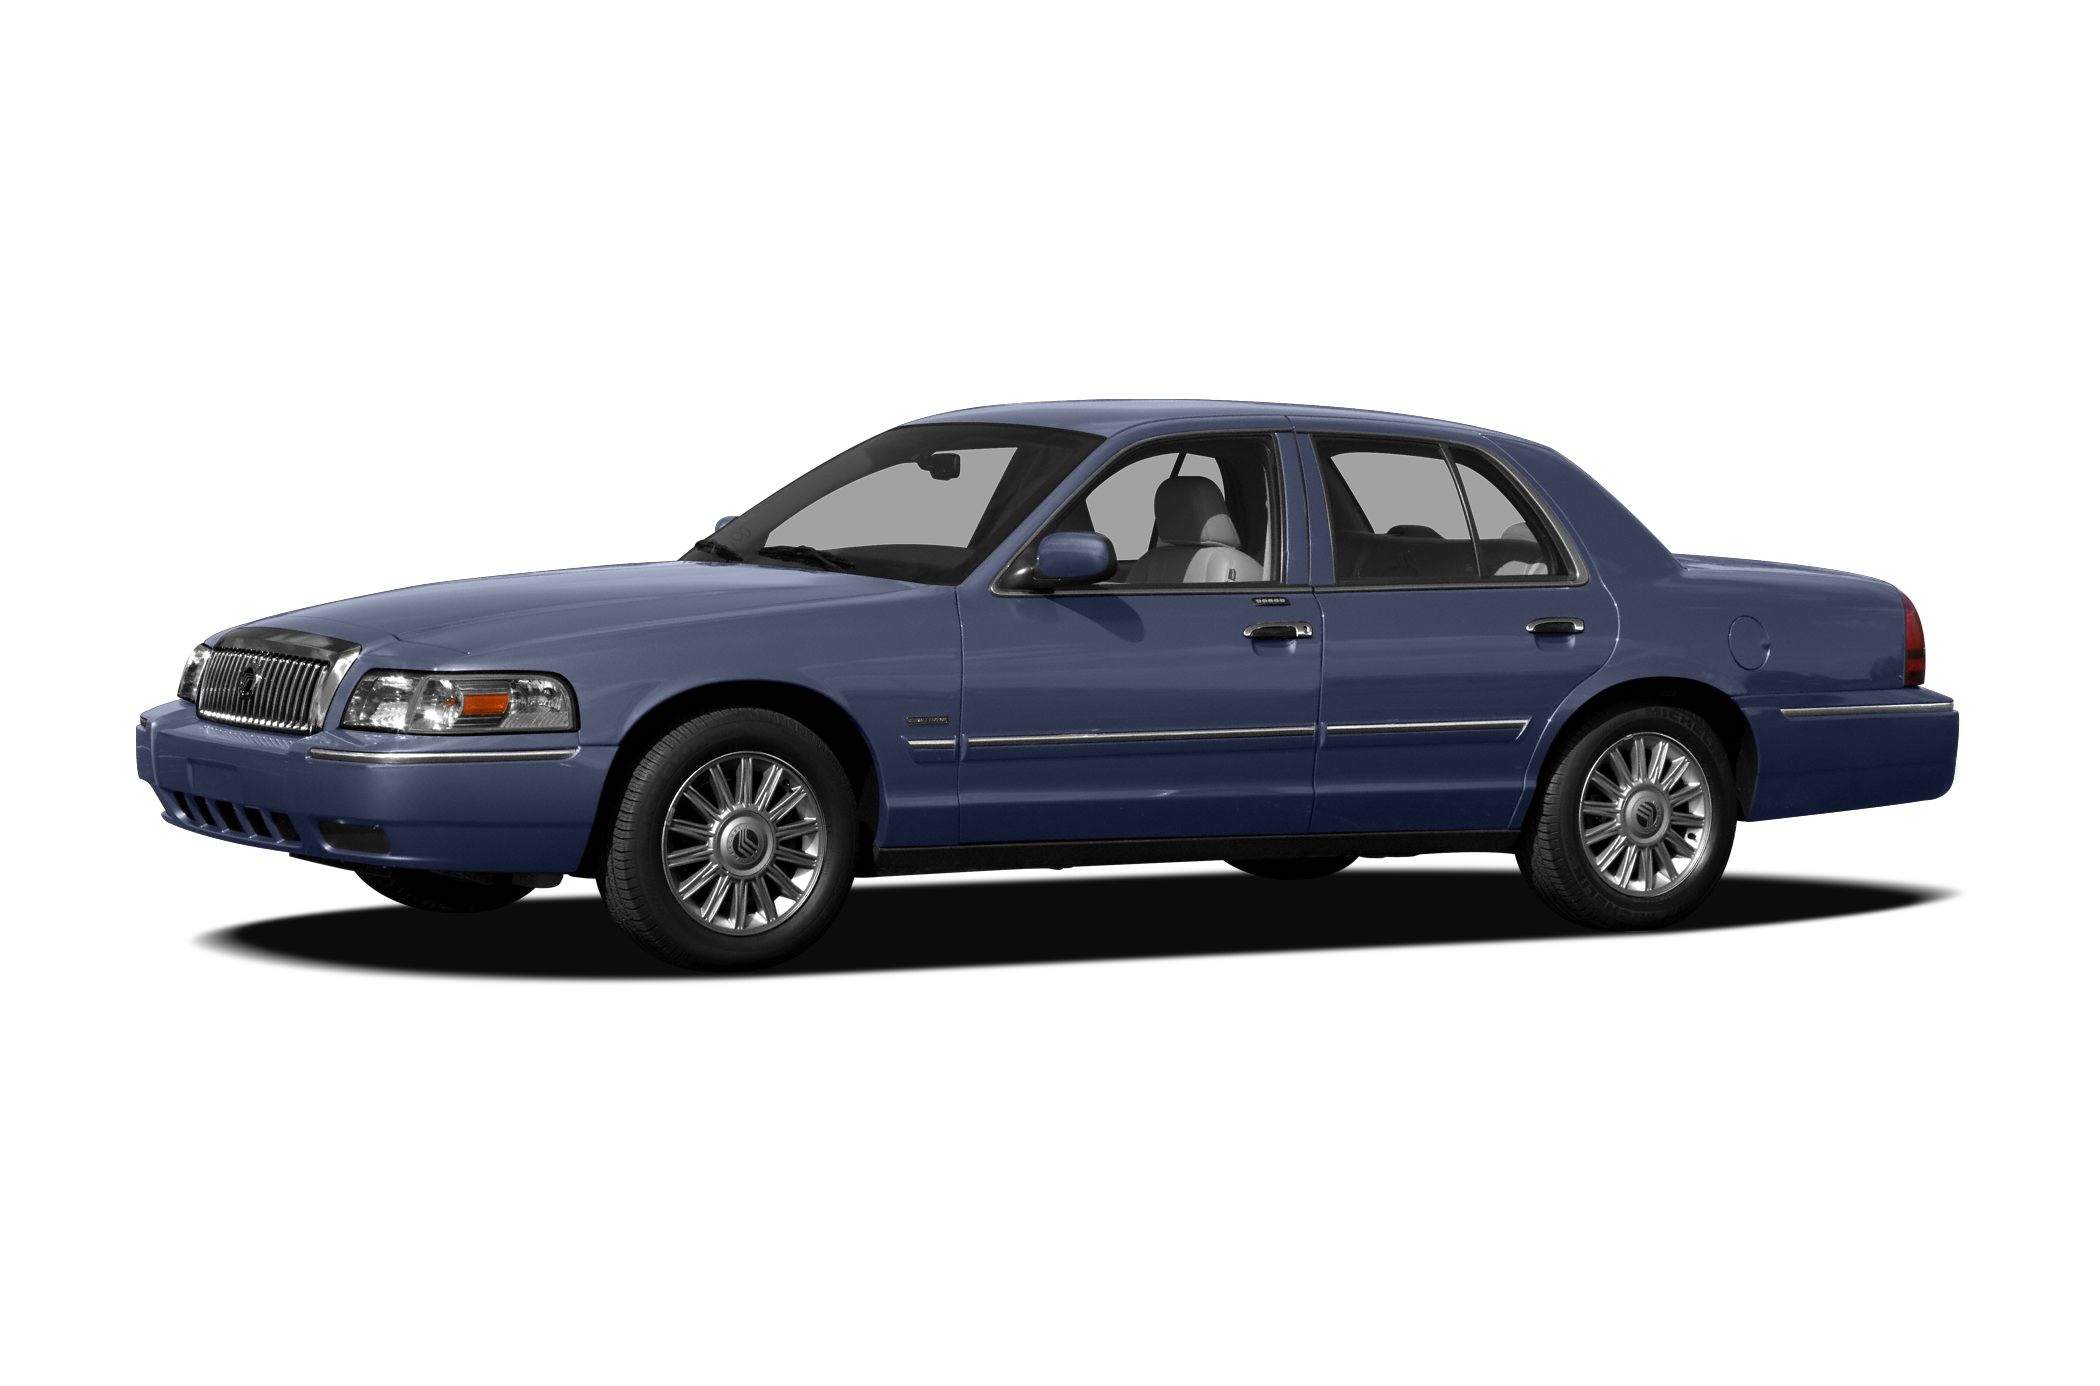 2010 Mercury Grand Marquis LS Sedan for sale in Monroe for $14,070 with 68,357 miles.